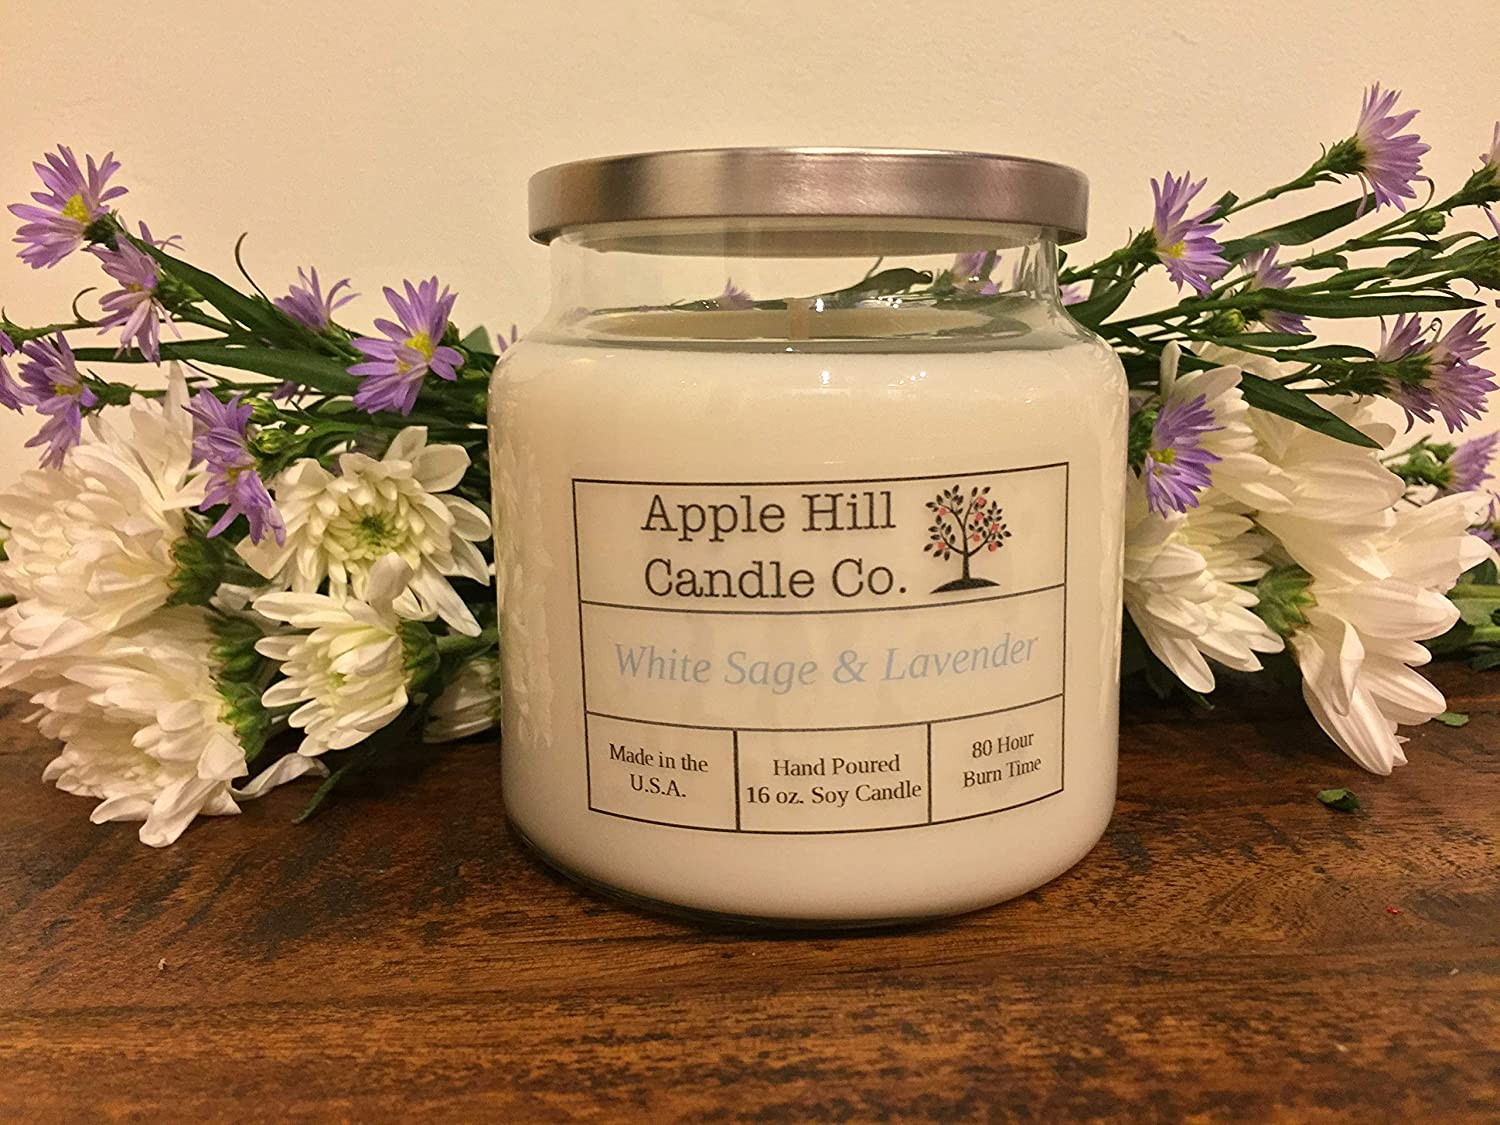 Handmade Natural Soy Candle - White Sage and Lavender (16 oz.) | Aromatherapy Candle | ~80 Hours Burn Time